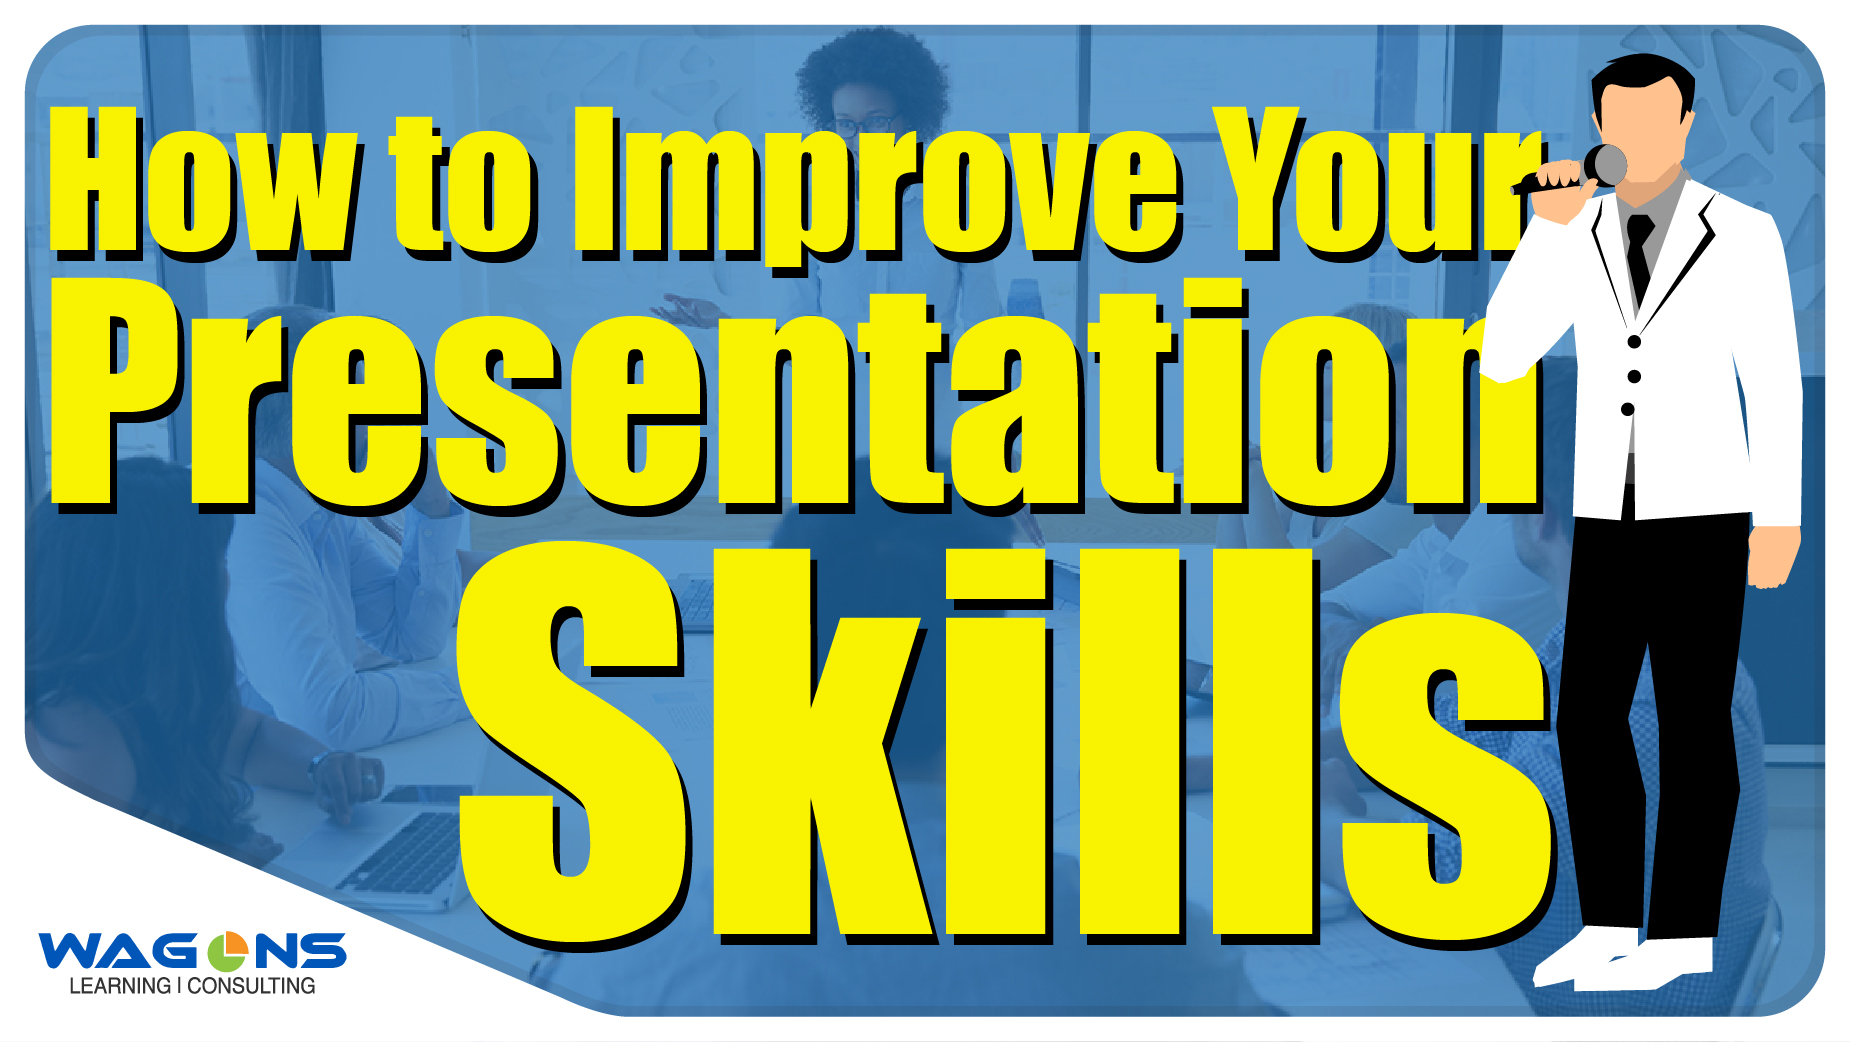 How to Improve Your Presentation Skills-01